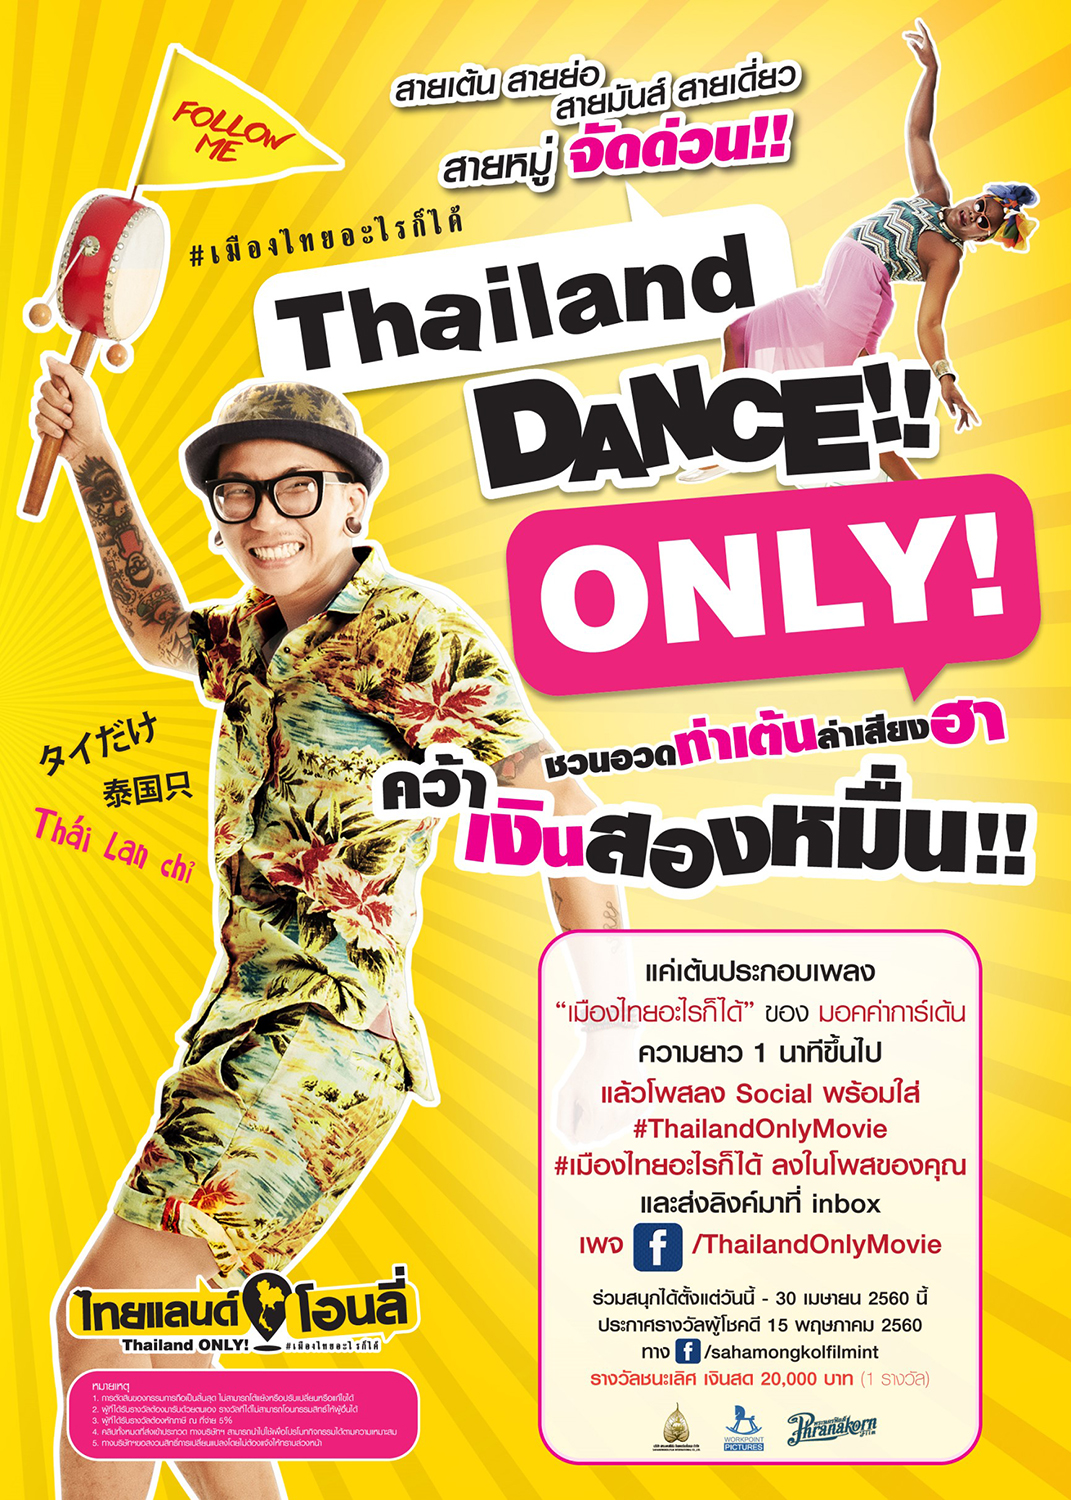 Thailand-Dance-Only-Poster